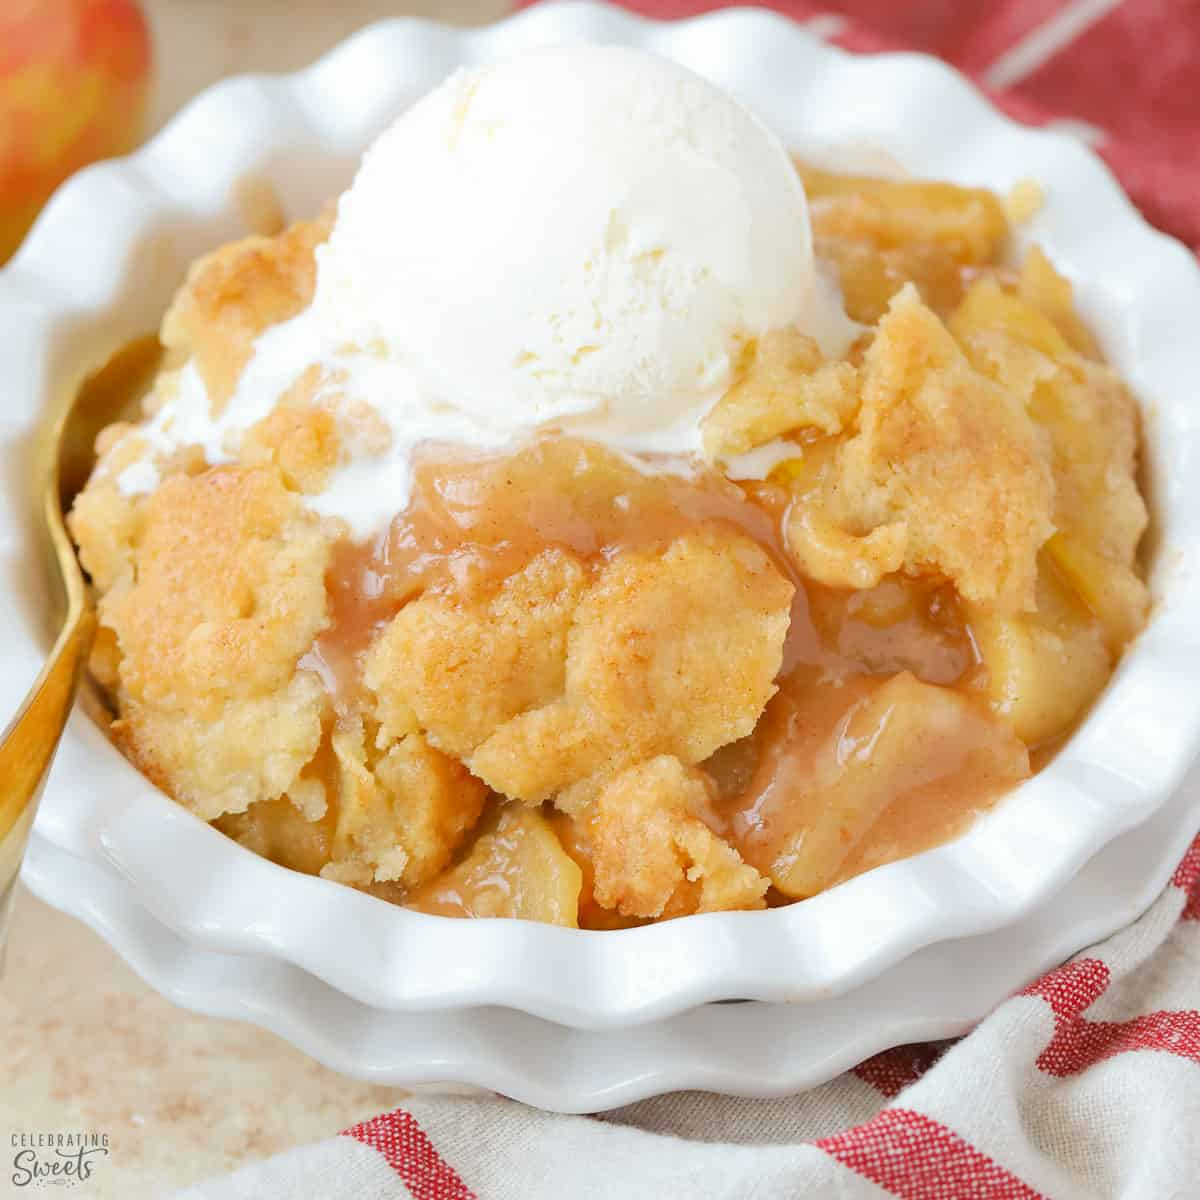 Apple-Cobbler-1-3.jpg